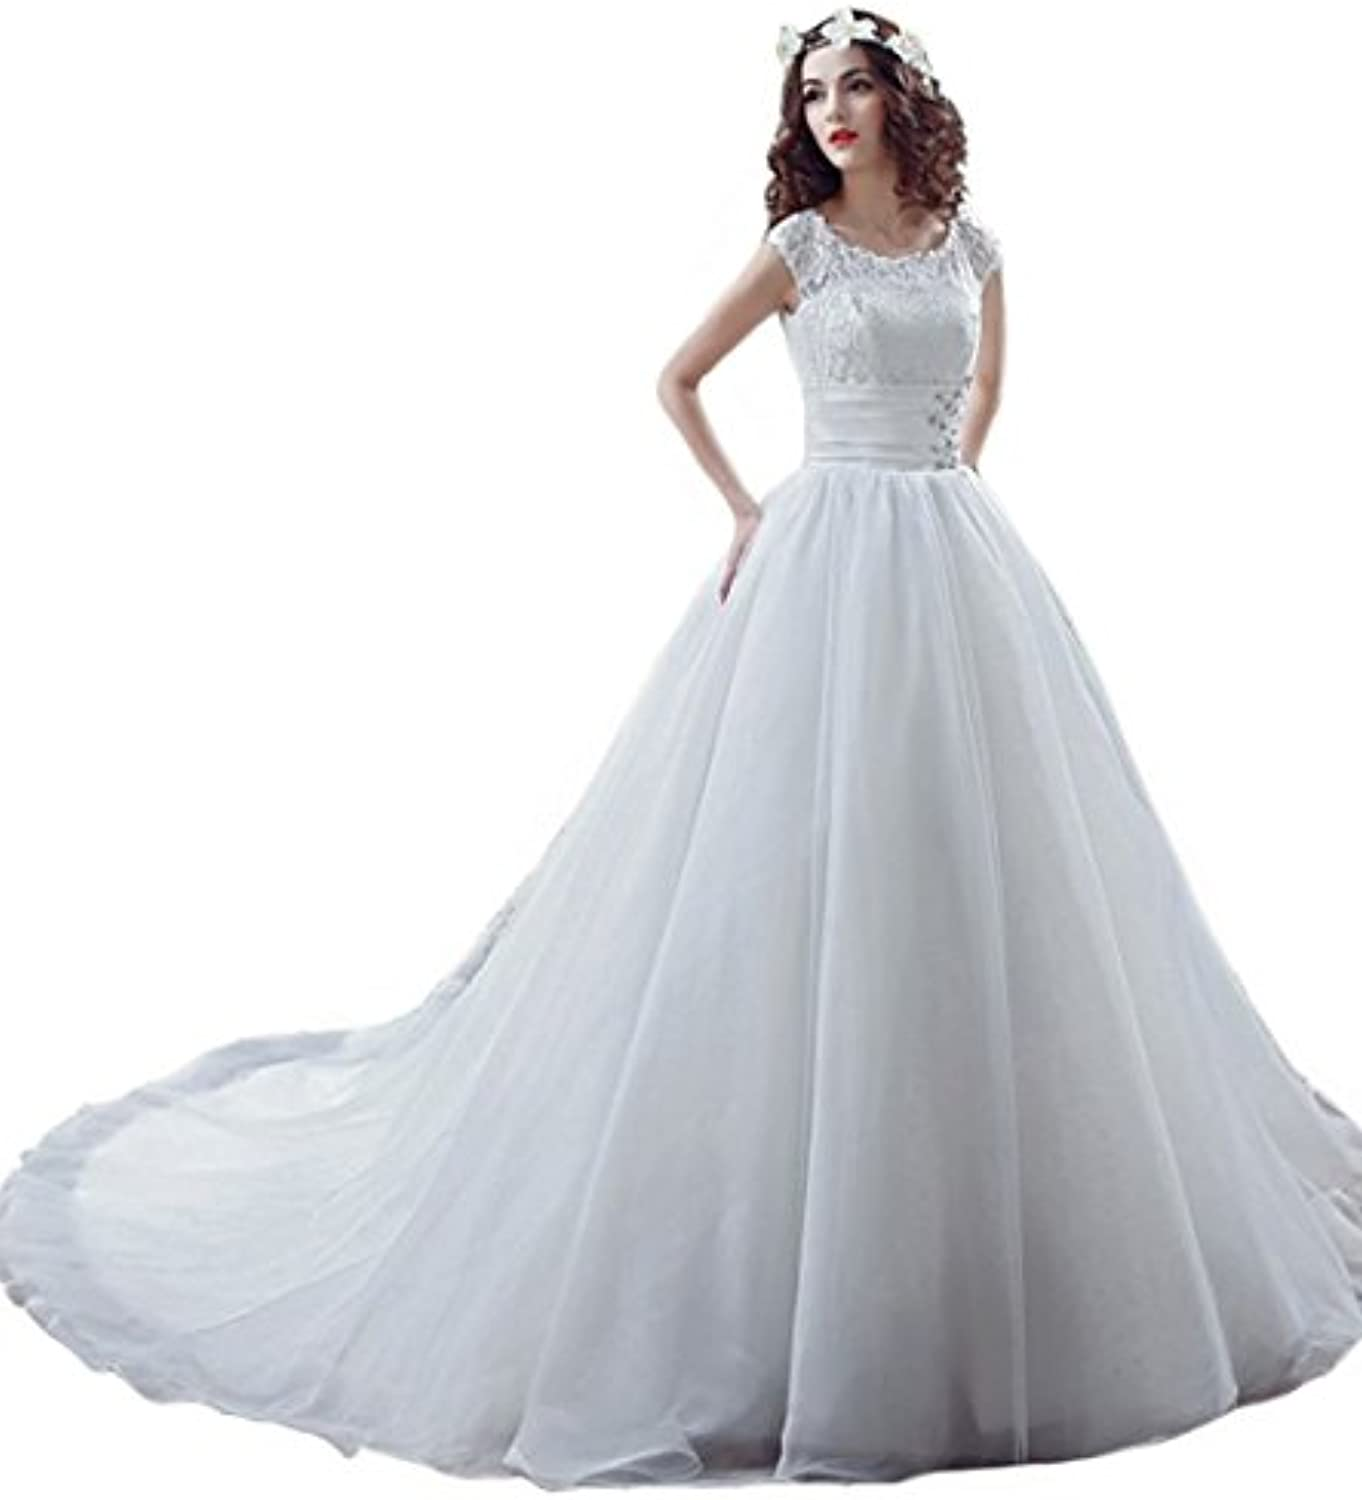 Beilite Women's Scoop Beaded Lace Wedding Dresses with Long Train